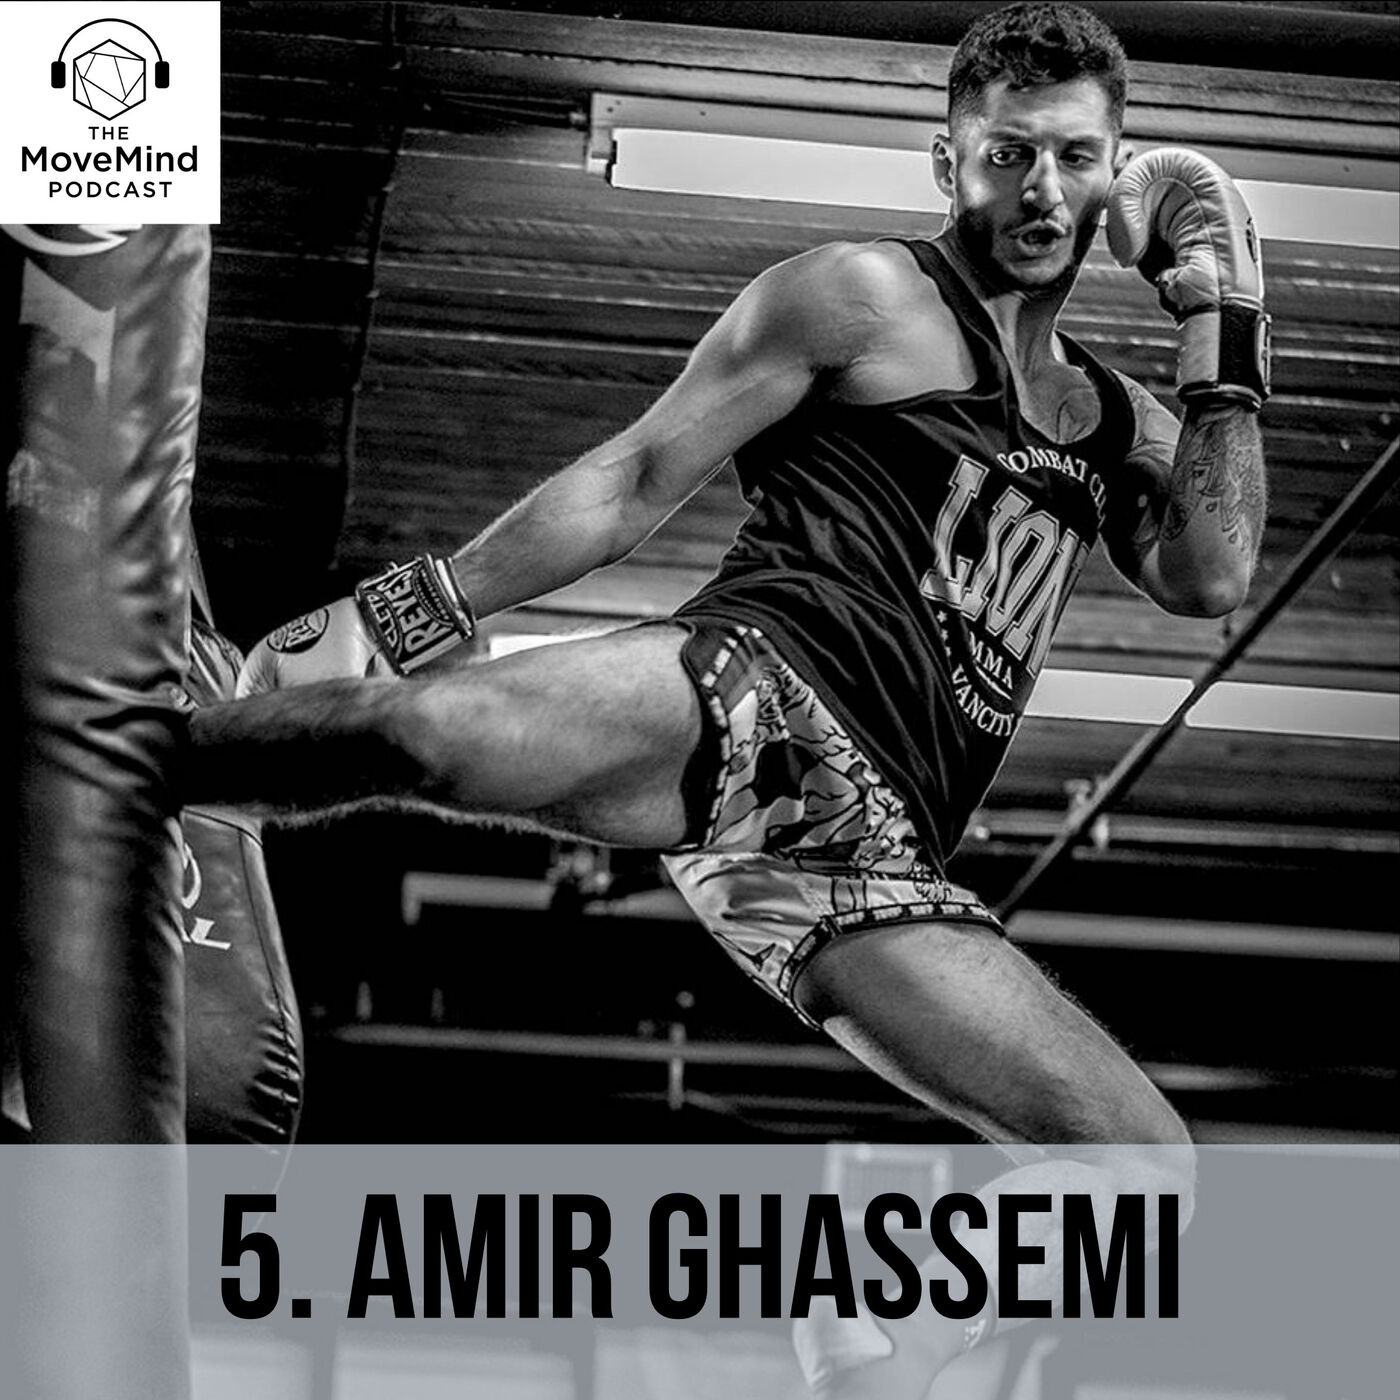 Amir Ghassemi on The Art Of Charm, How To Cut Weight and Teaching Women How To Protect Themselves (#5)